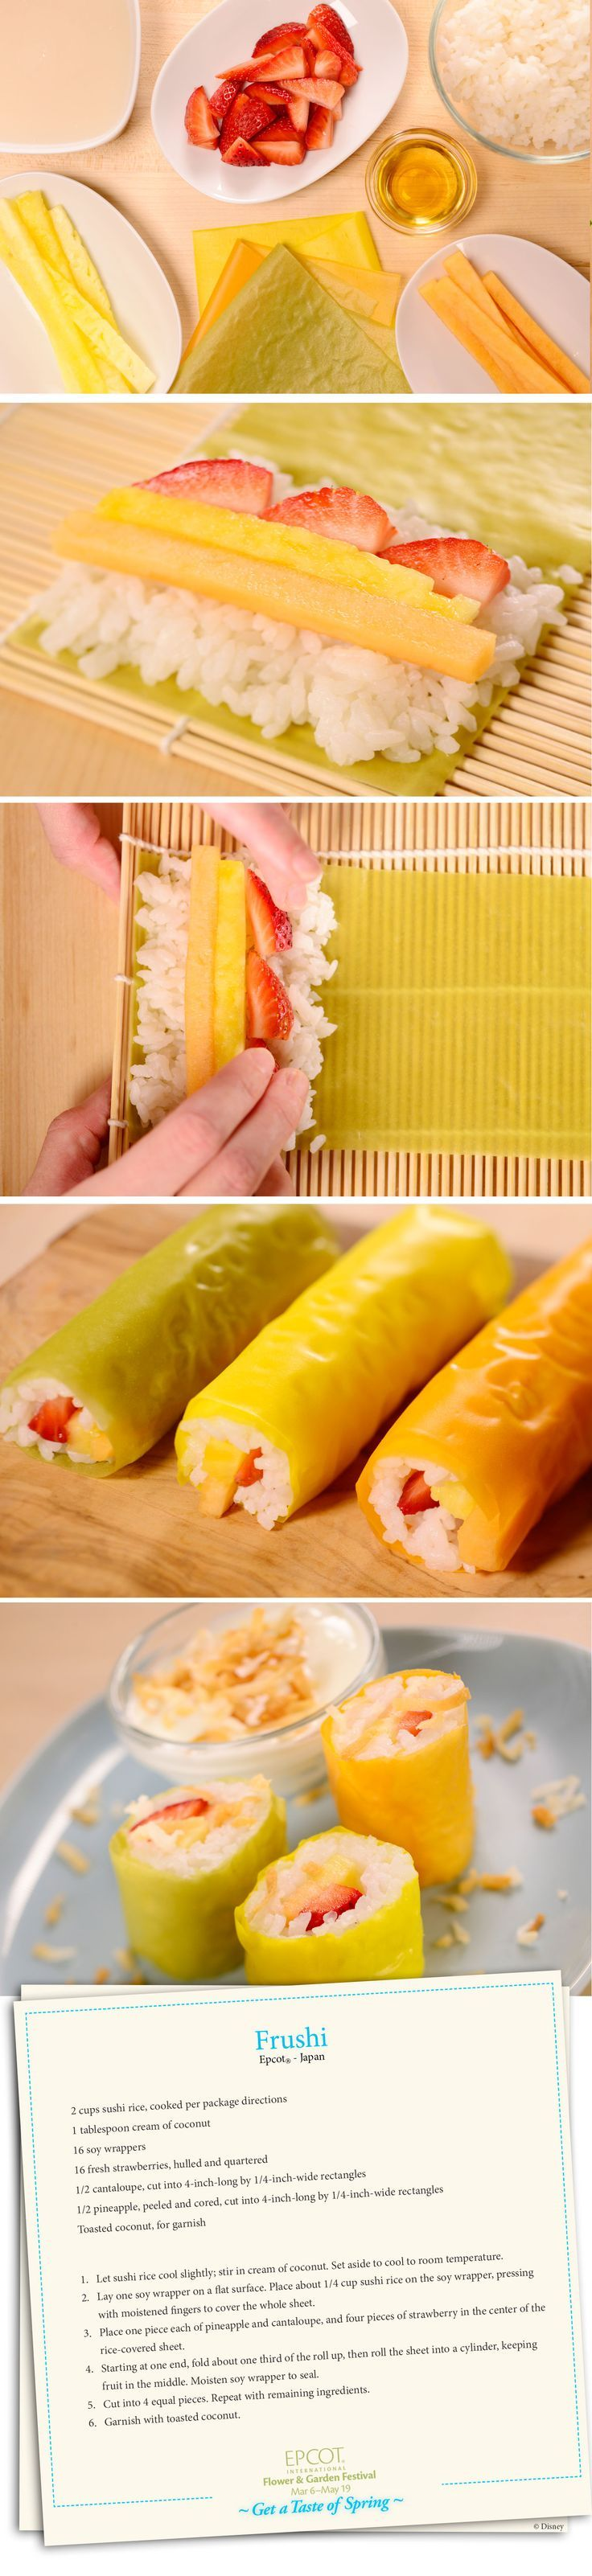 Frushi: Prepare 2c sushi rice. While warm, add 1 tbs coconut cream. Take a soy wrapper (or colored pancake) and fill it with rice, pineapple, cantaloupe & strawberry. Fold, roll & cut into pieces. X